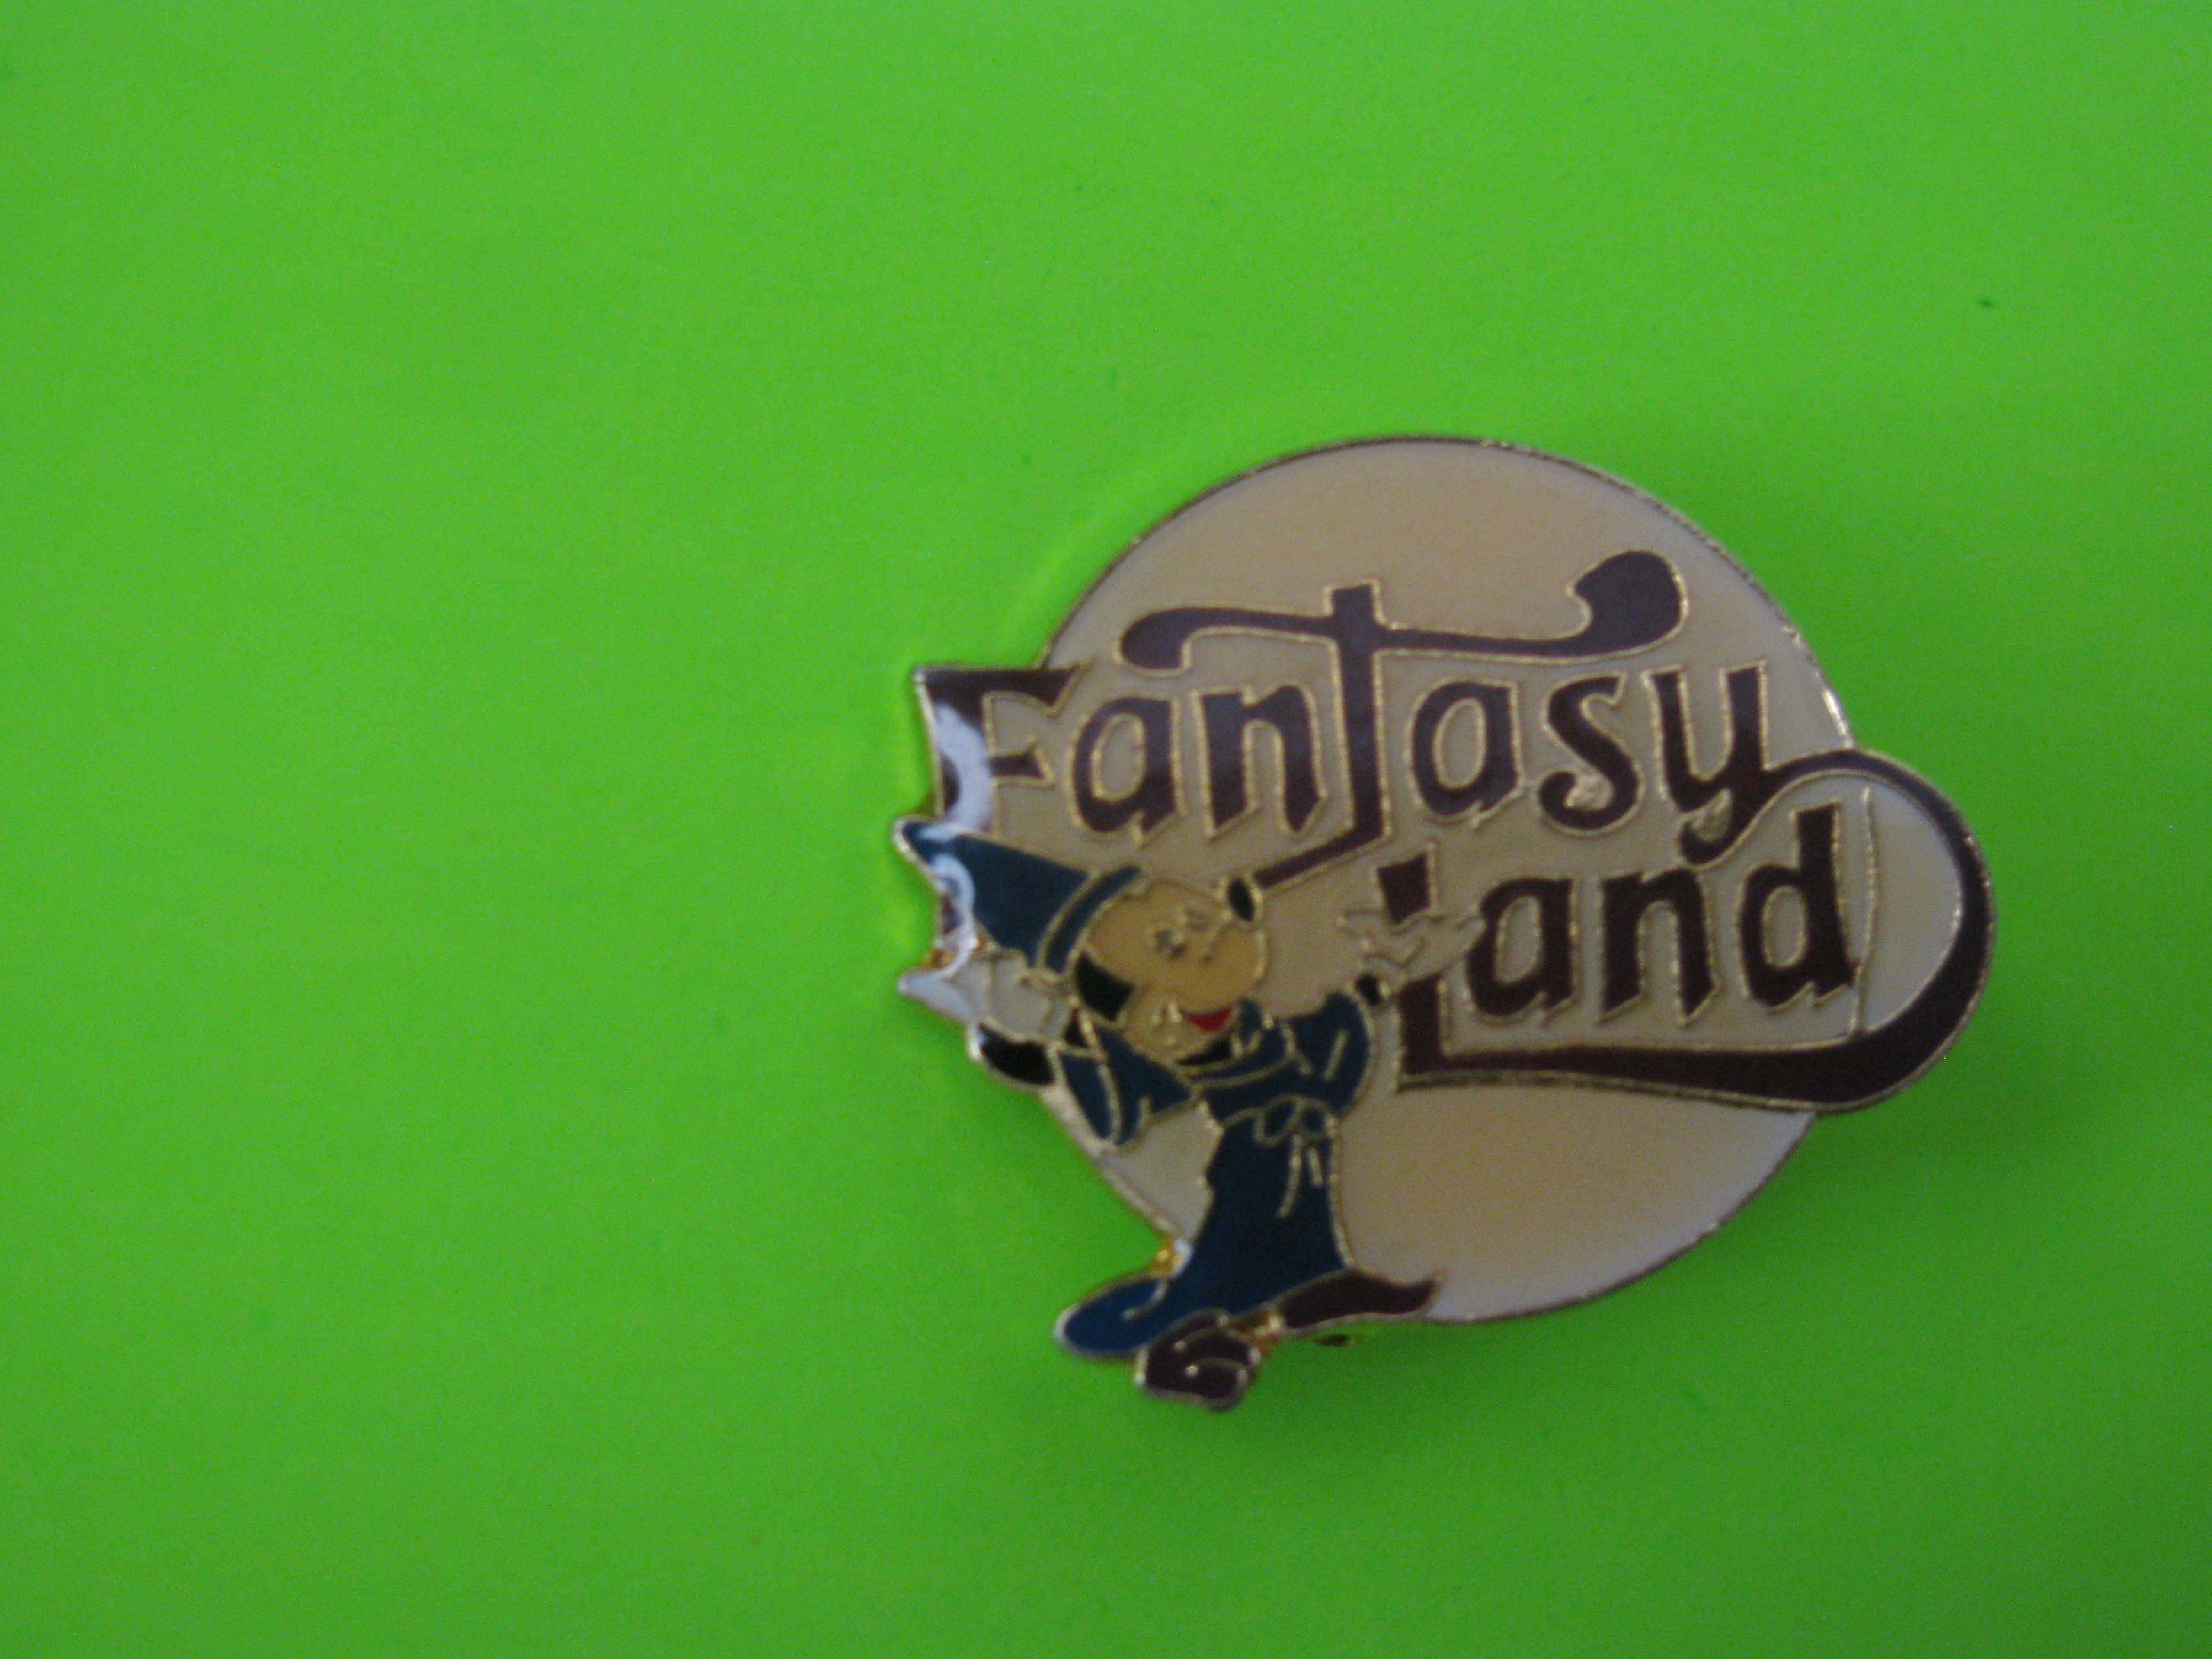 Vintage Fantasy Land Promo Pin with Mickey Mouse, Metal with Clutch